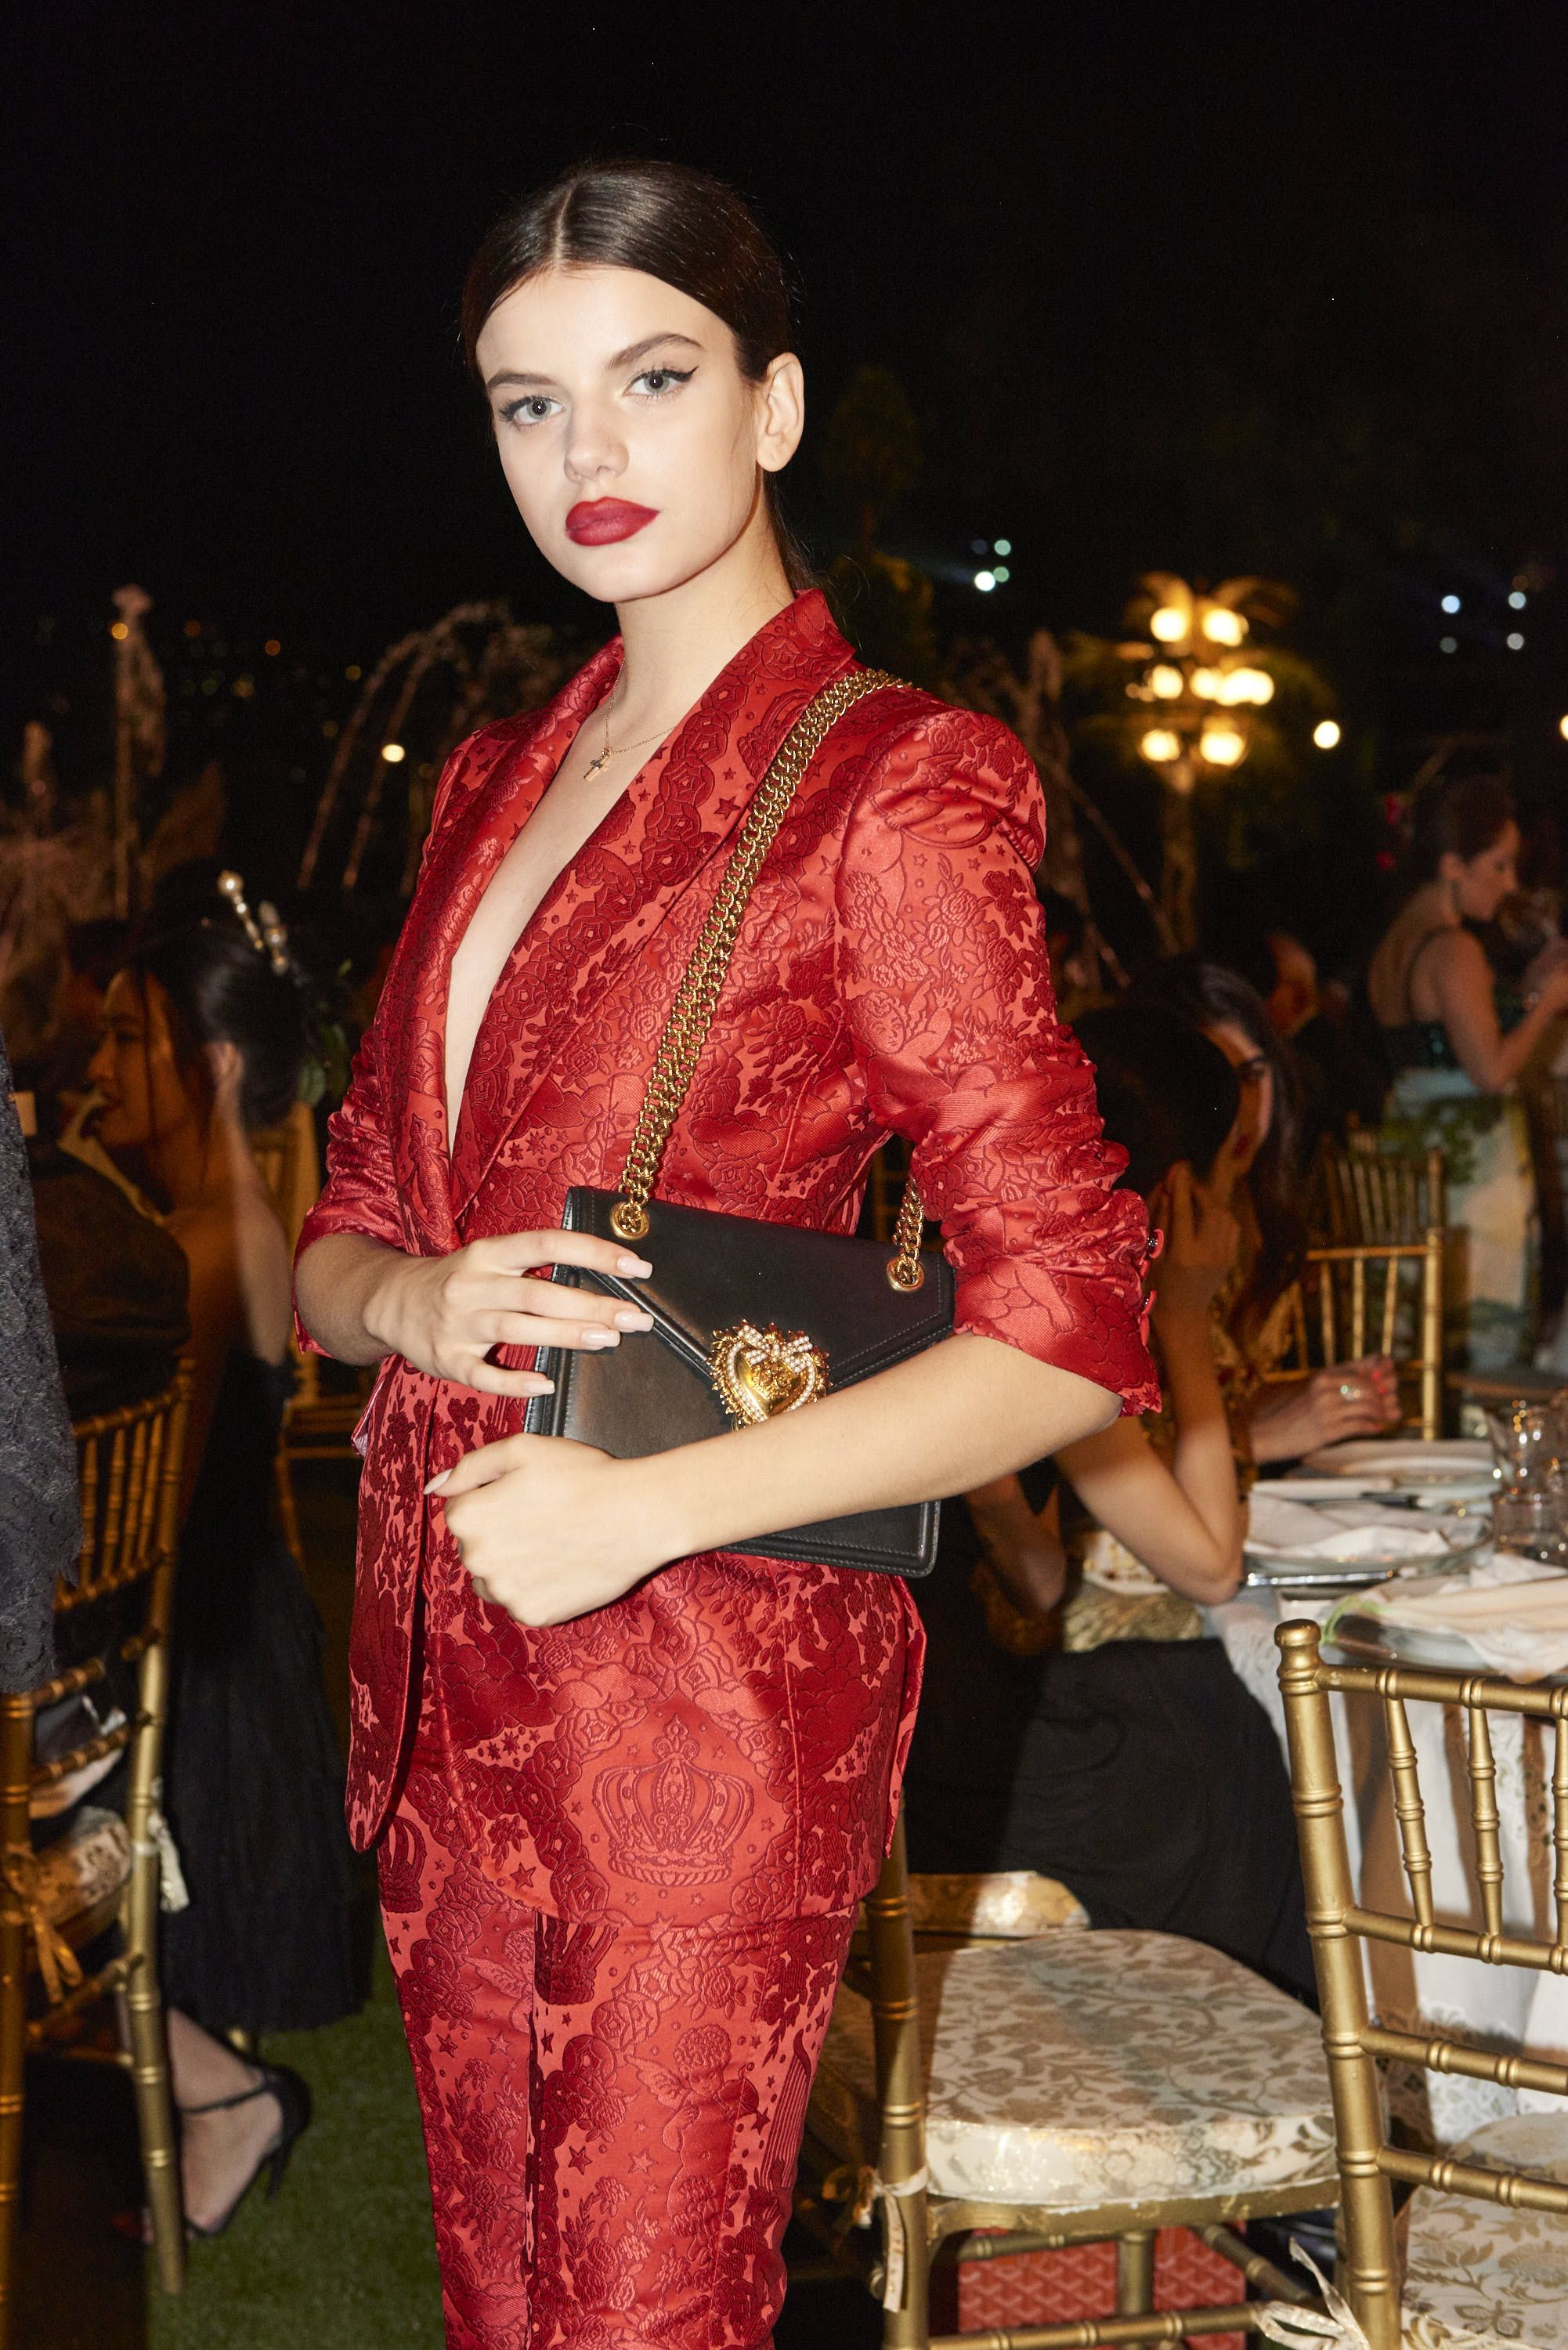 e0d2bd3494 Sonia Ben Ammar and her Devotion Bag at the Dolce Gabbana Alta Moda dinner  in Como.  DGDevotionBag  DGWomen  DGCelebs